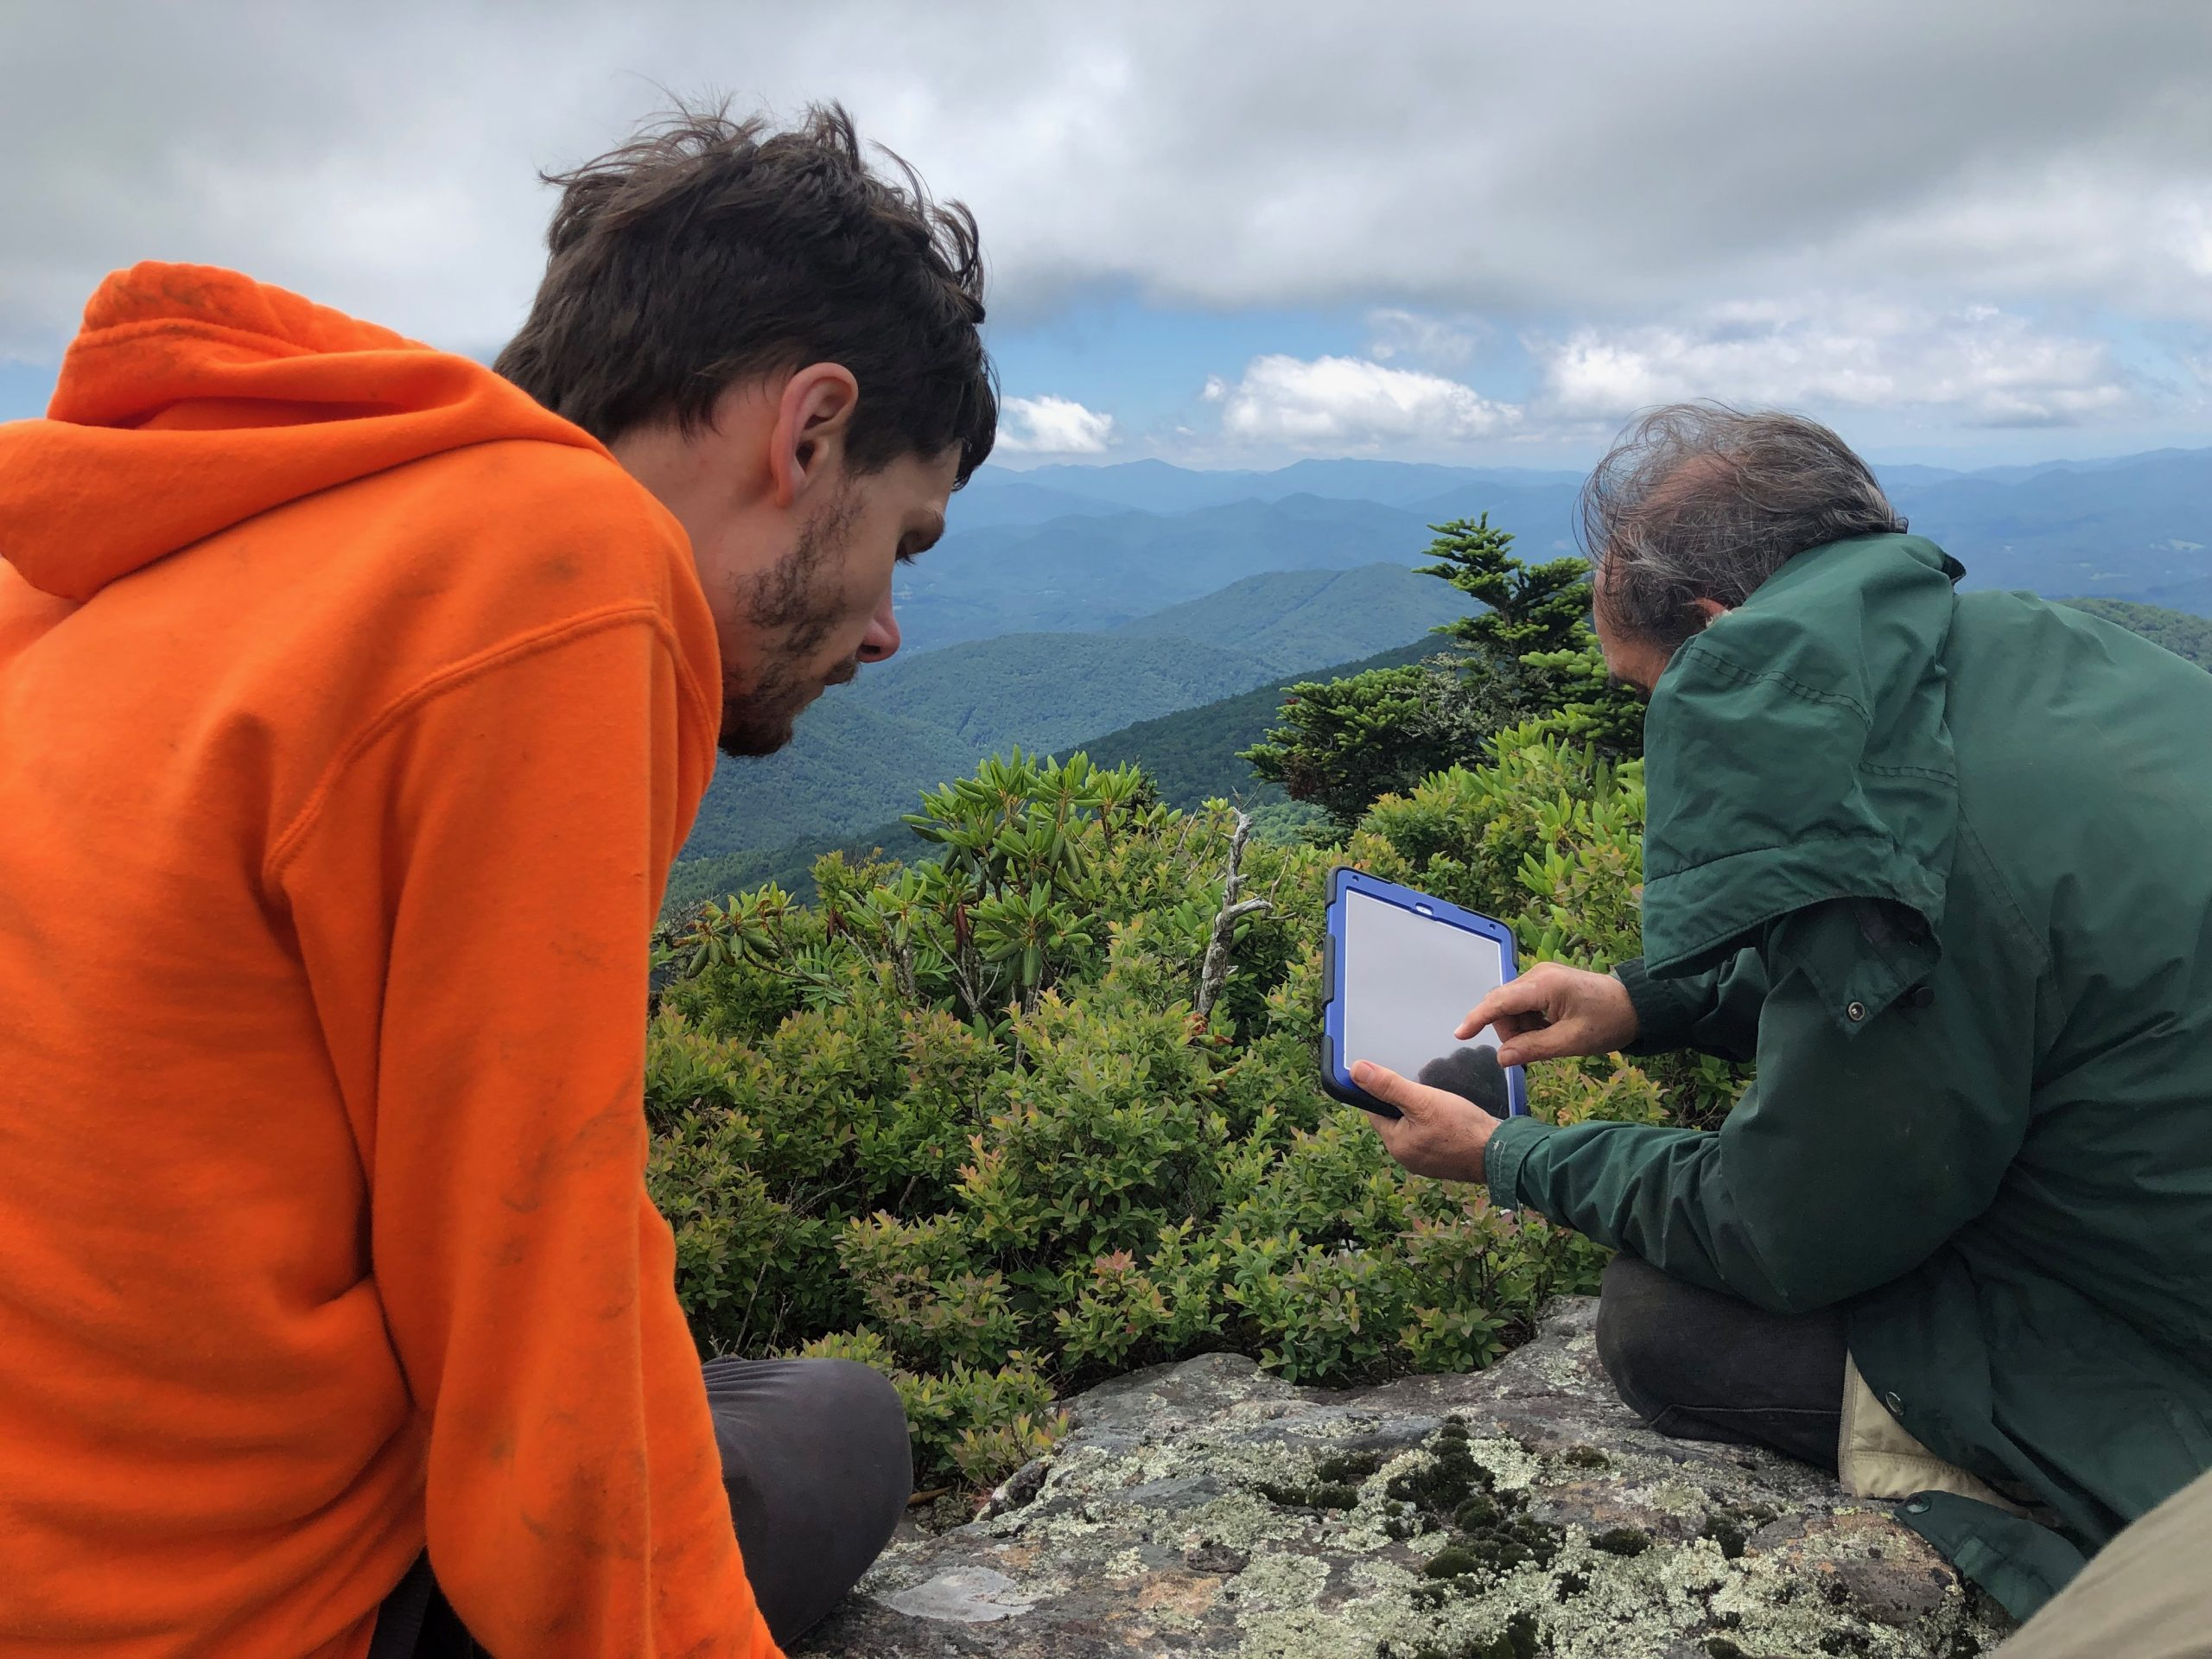 James Lendemer and North Carolina National Forest Service Botanist Gary Kauffman surveying for rare lichen species on a windy cliff of Roan Mountain, North Carolina.